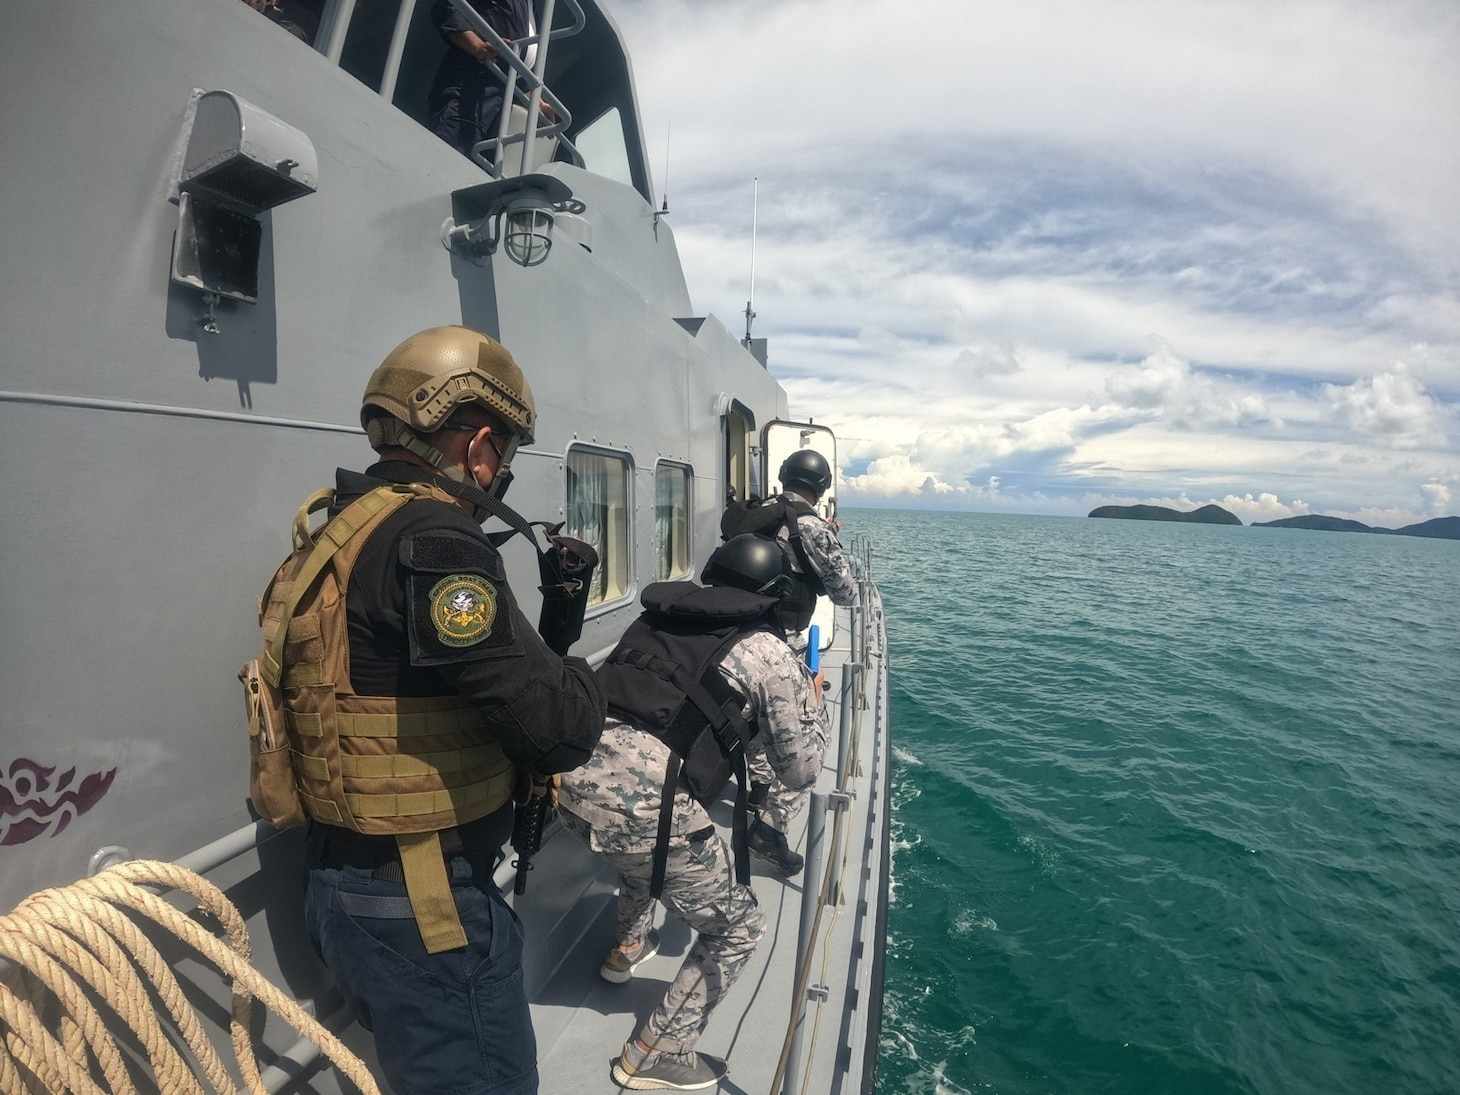 PHUKET, Thailand (Aug. 15, 2021) U.S. Navy and Thailand Maritime Enforcement Command Center (Thai MECC) personnel practice maritime tactics, techniques and procedures during Southeast Asia Cooperation and Training (SEACAT) exercise